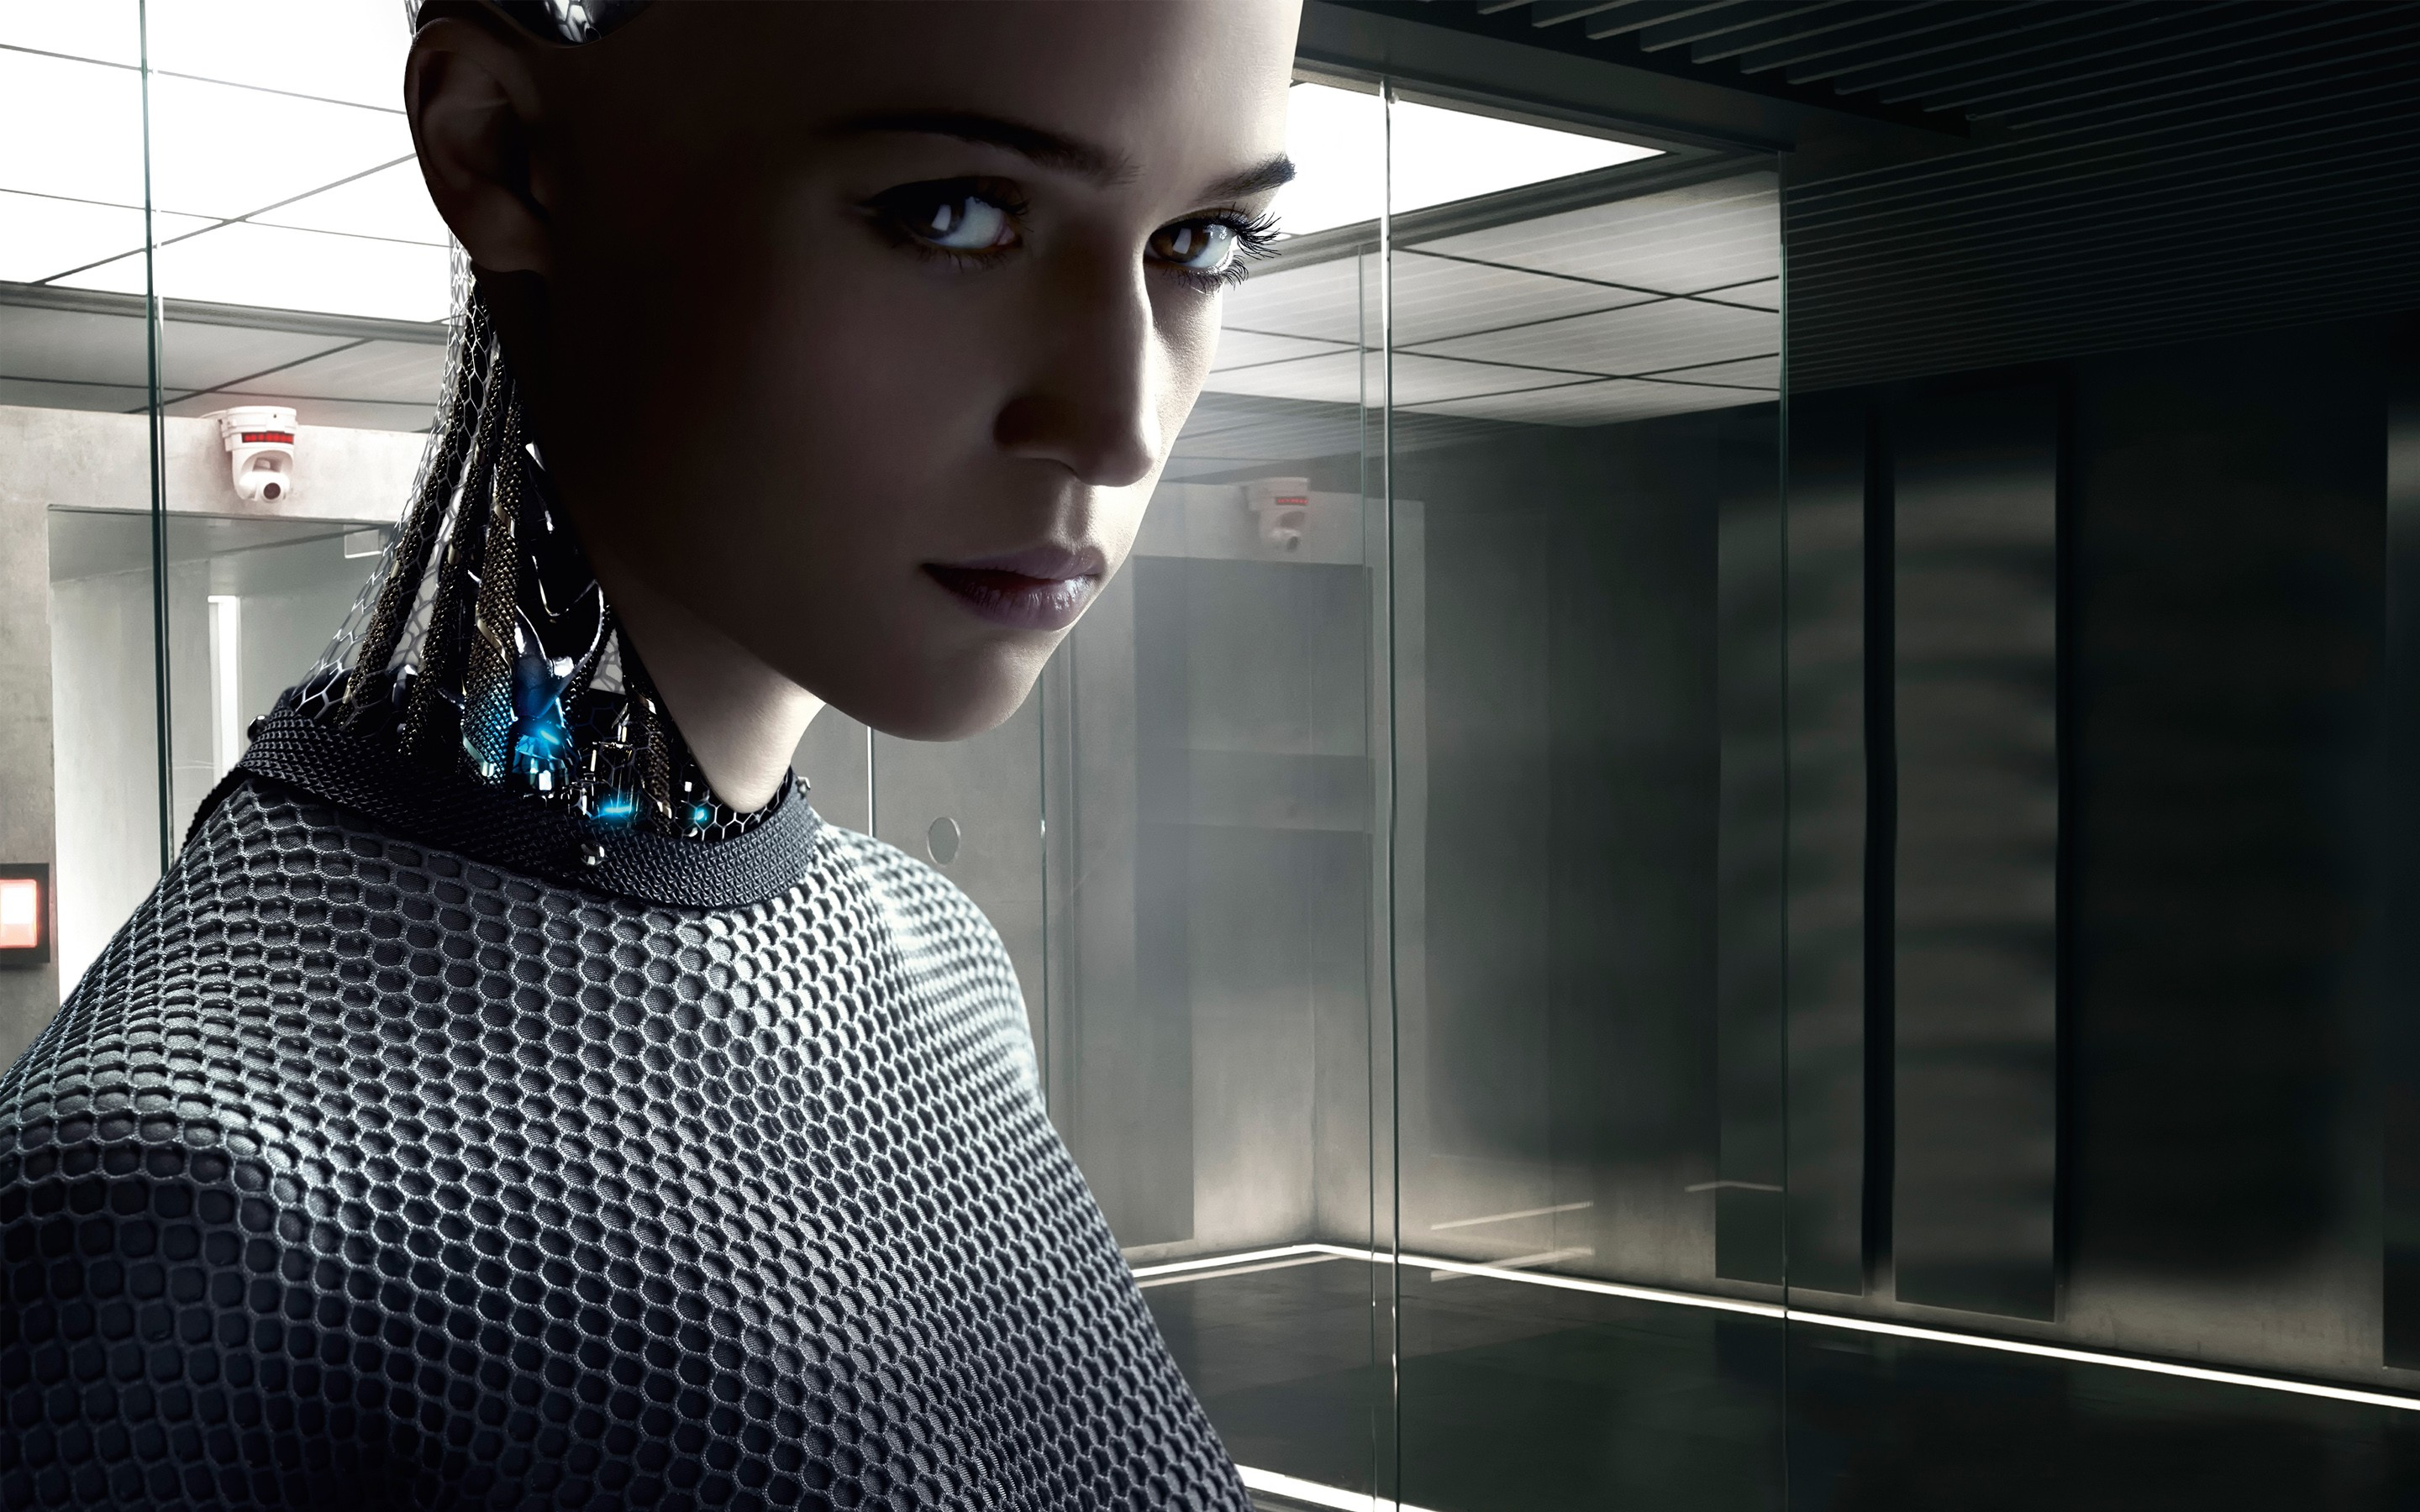 Cute Girls Dresess Cute Anime Wallpaper Hd Ex Machina 2015 Movie Hd Movies 4k Wallpapers Images